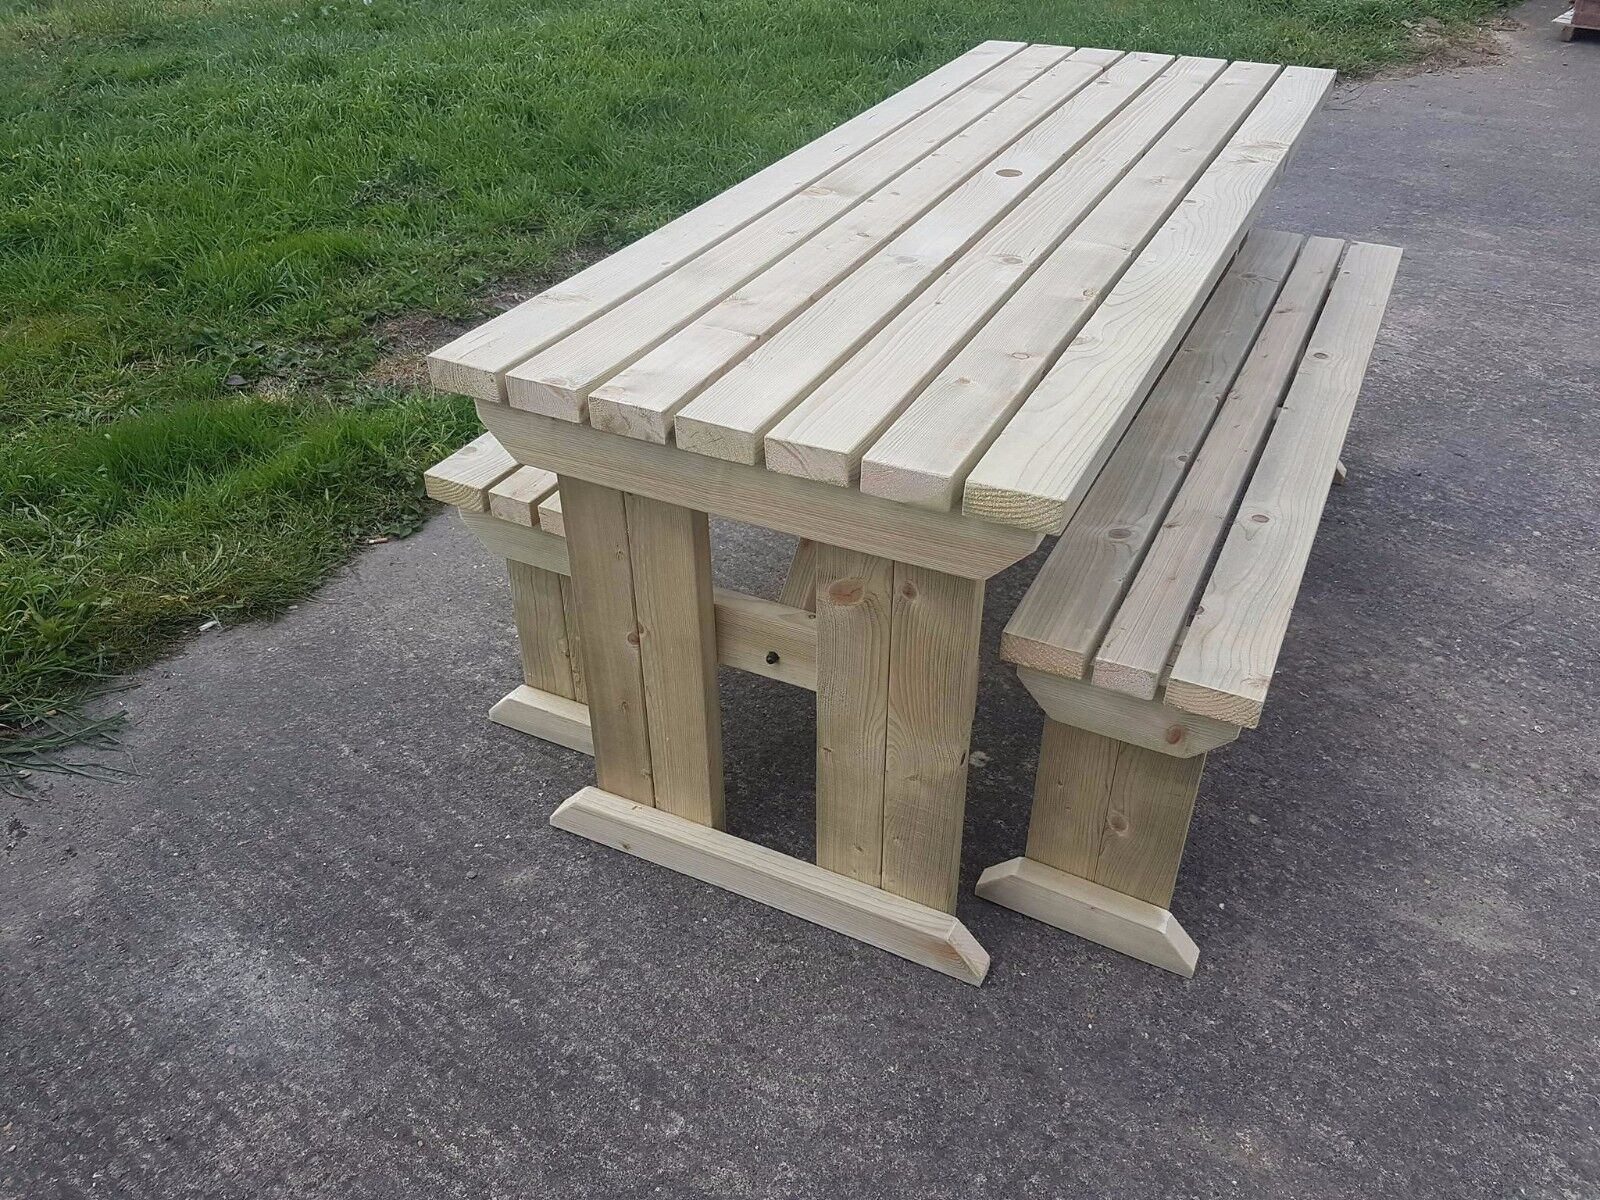 treated uk hand garden made amazon pub co rustic brown table style heavy pressure dp picnic outdoors duty bench